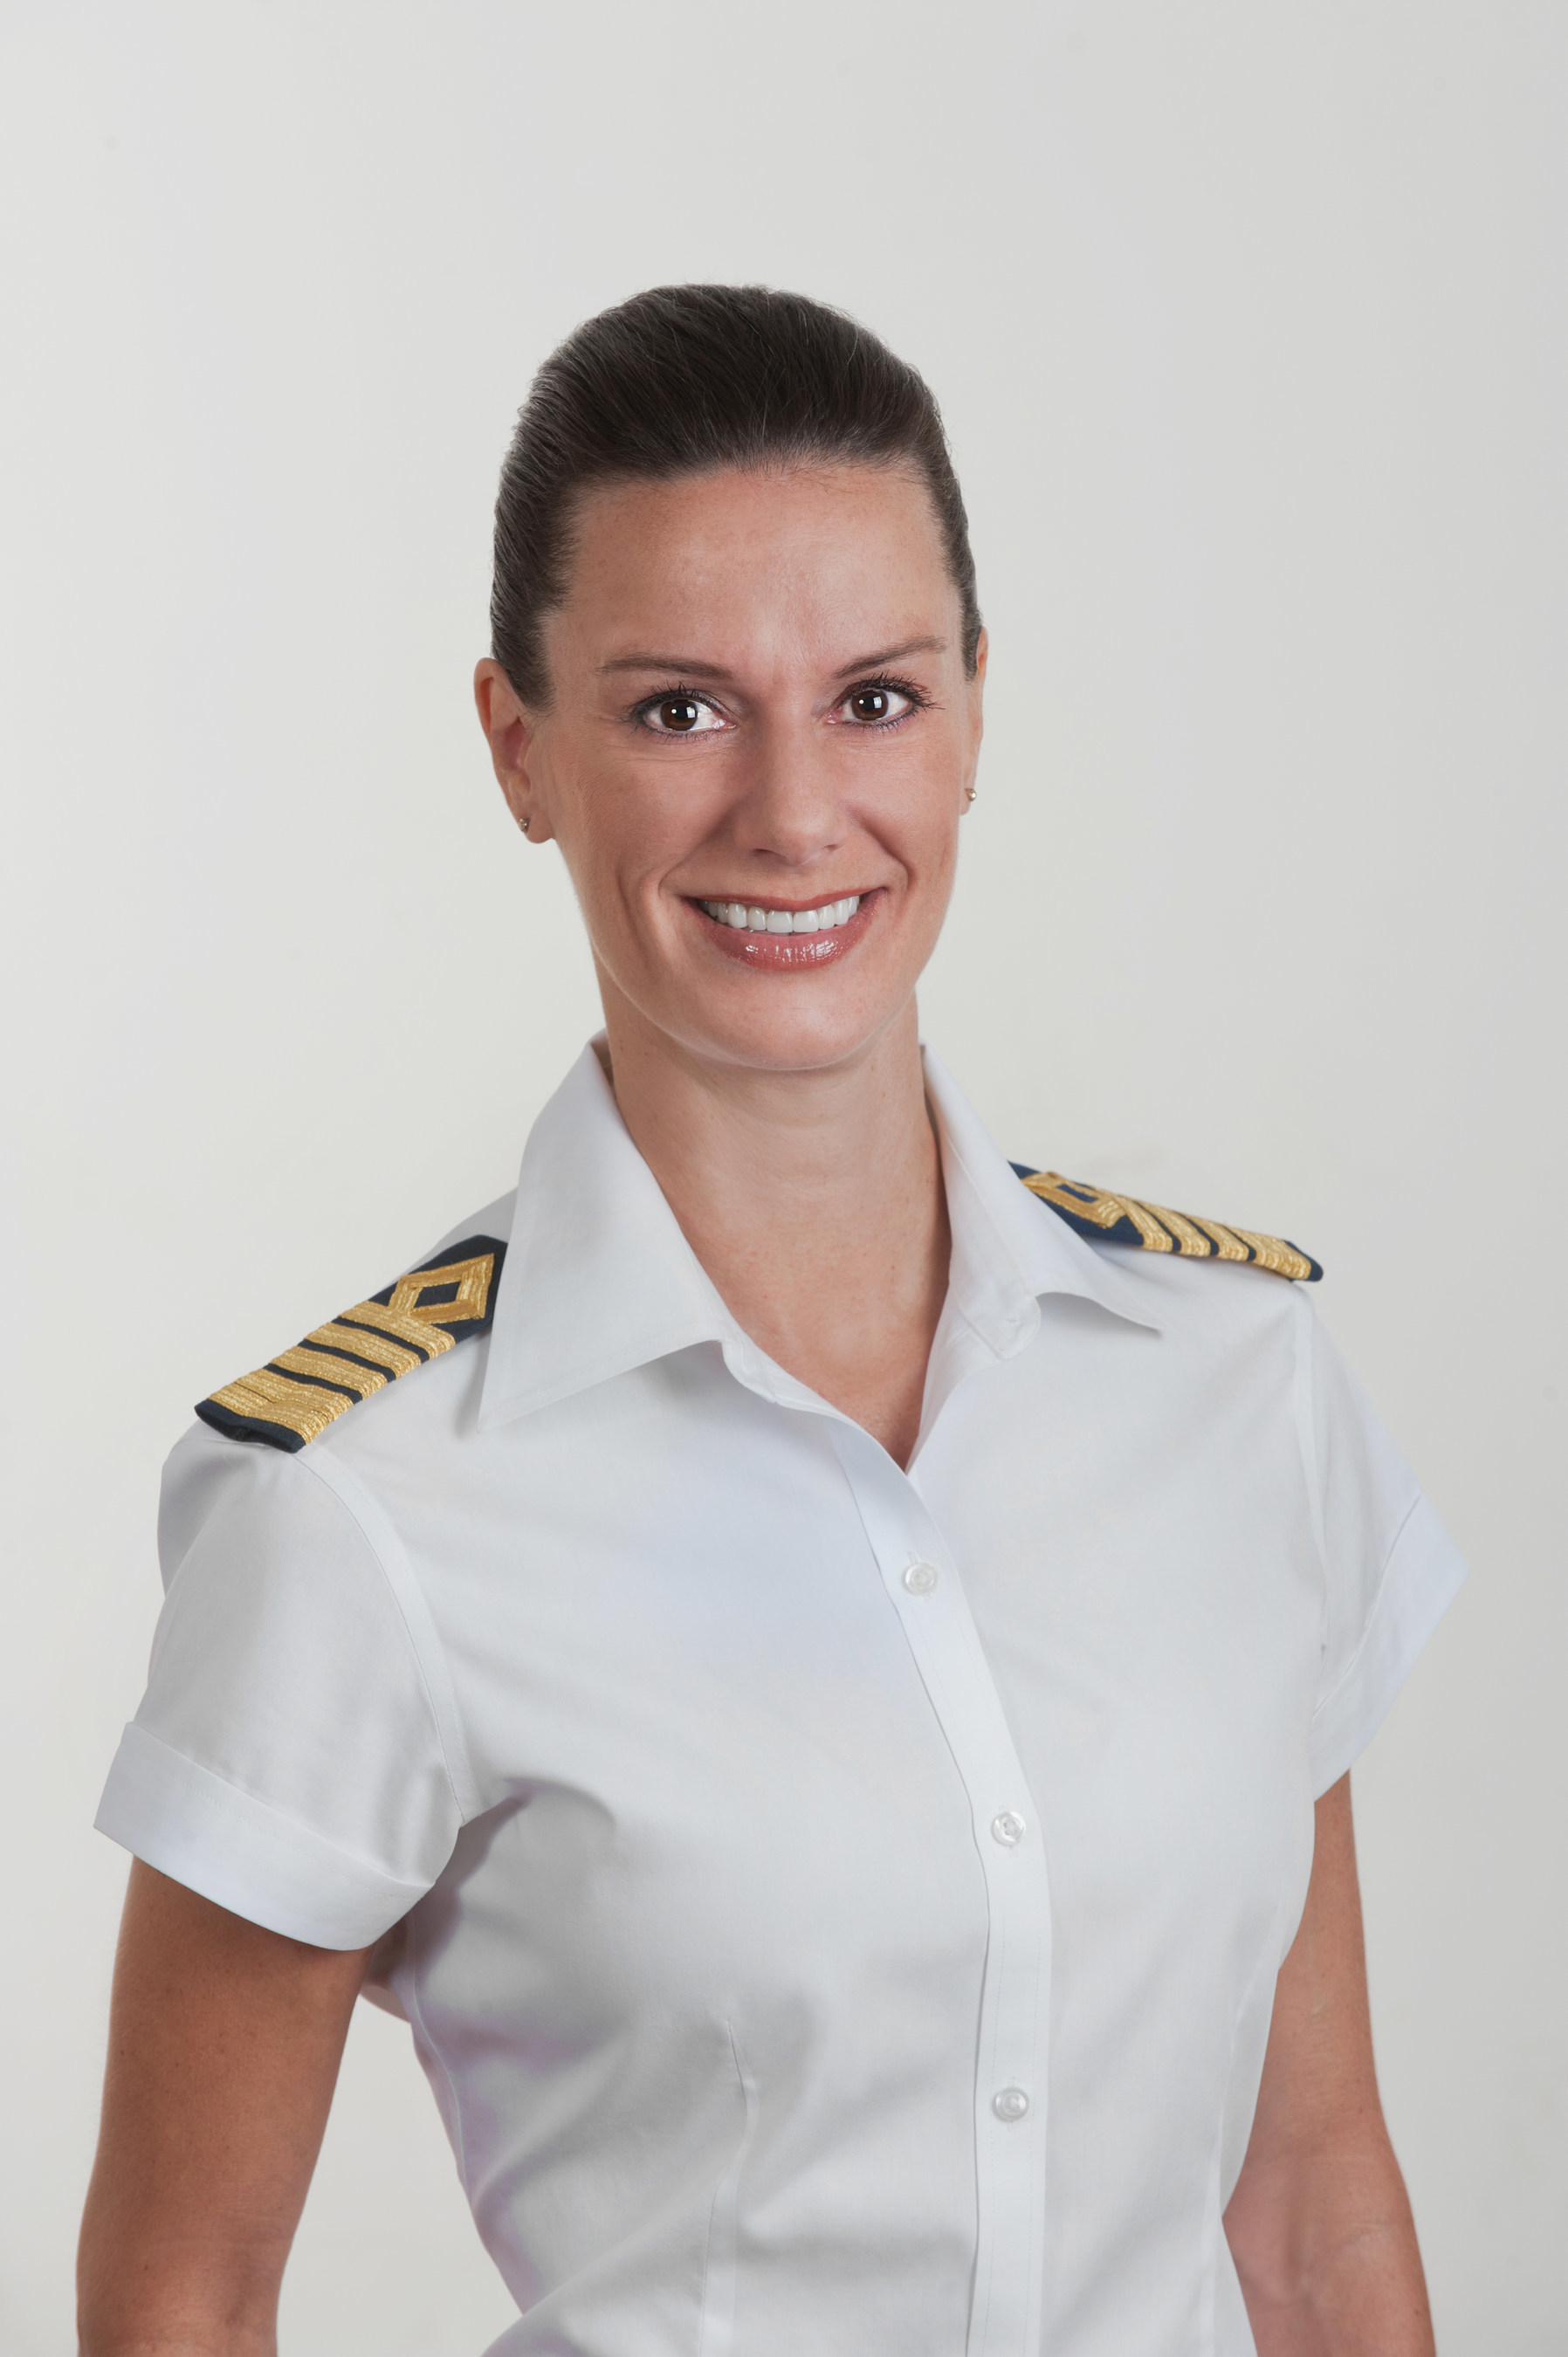 Celebrity Cruises named Kate McCue as the cruise industry's first American female captain